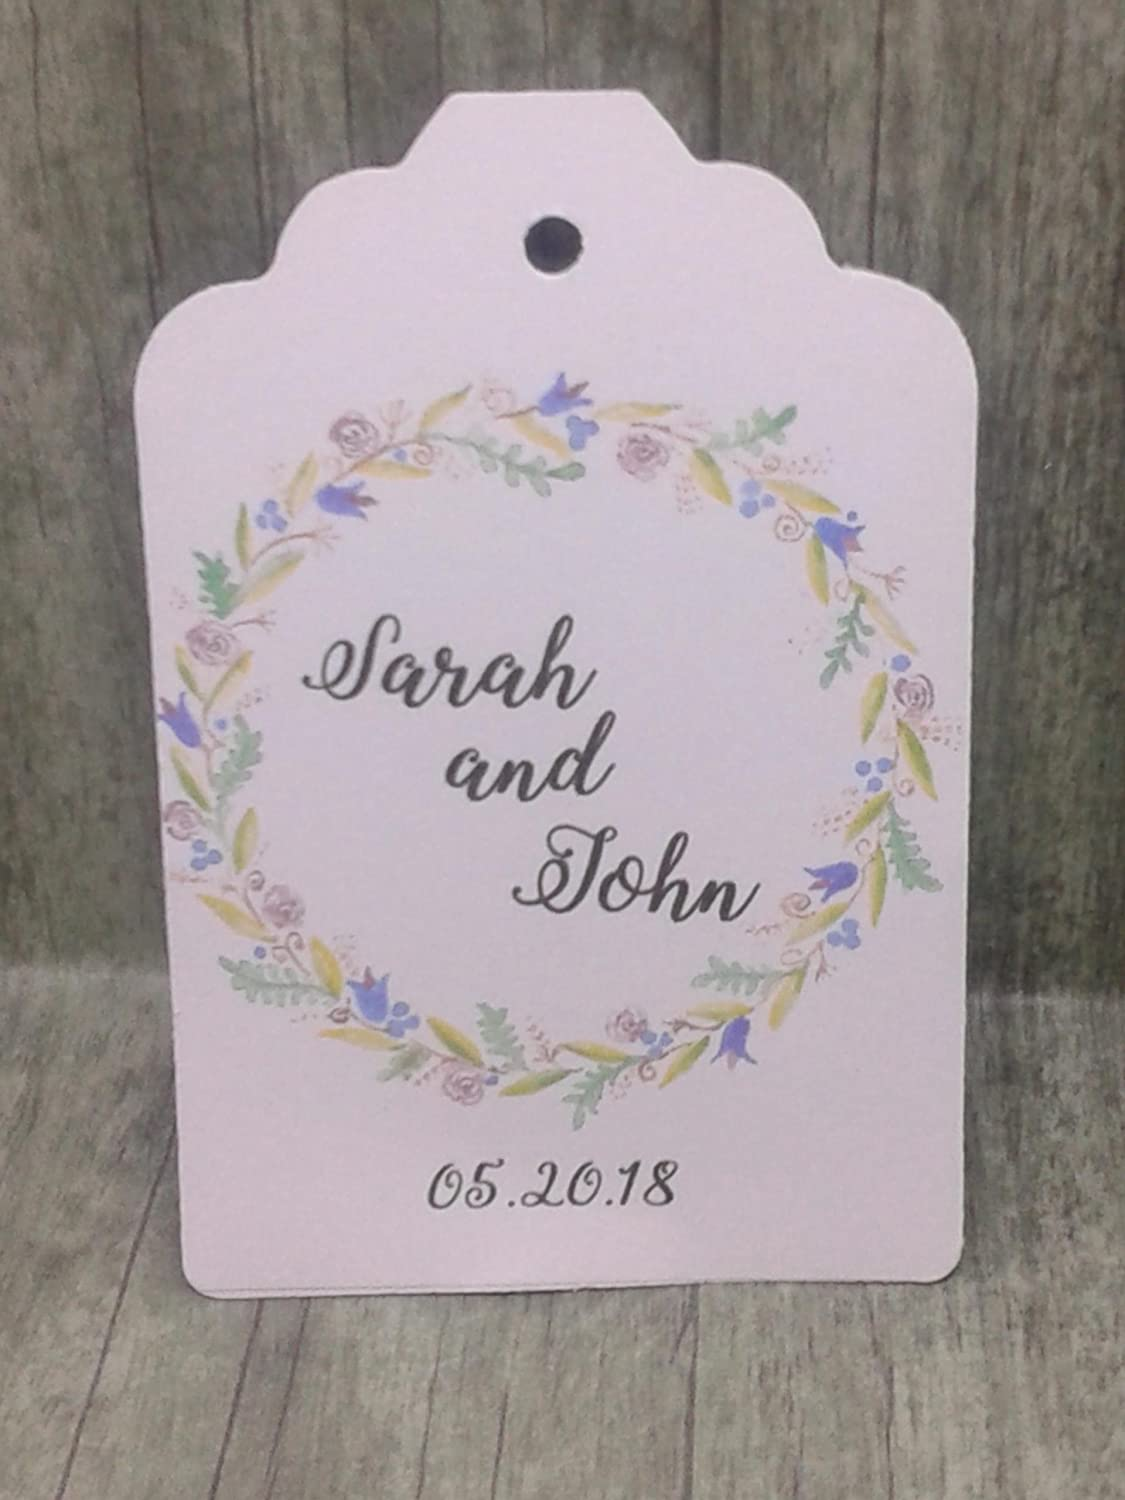 Financial sales sale GIFT TAGS Many popular brands set of 25 tags wedding favour wreath gift design